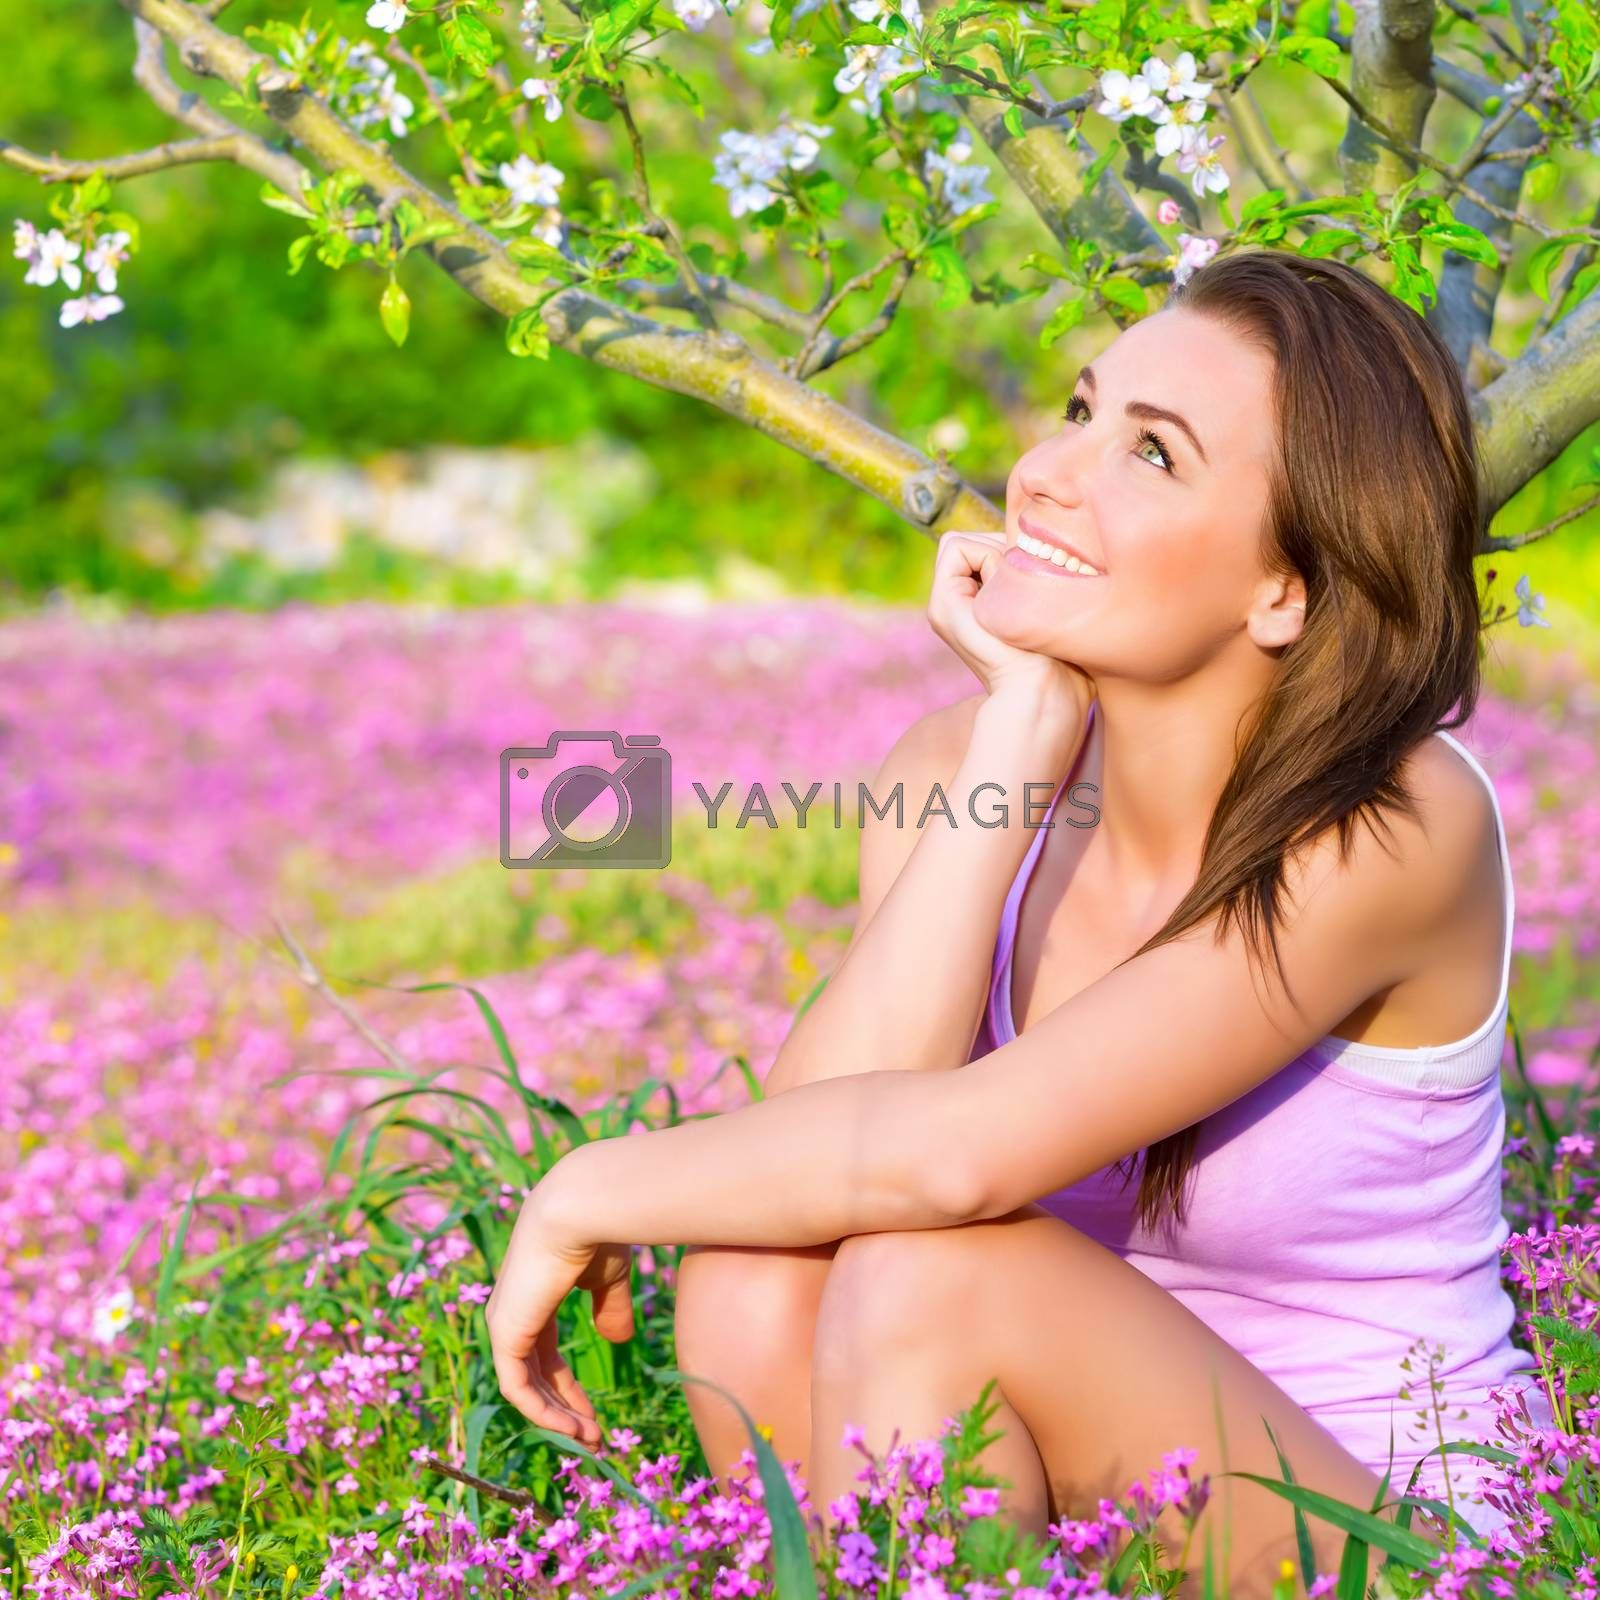 Royalty free image of Dreamy woman in blooming park by Anna_Omelchenko